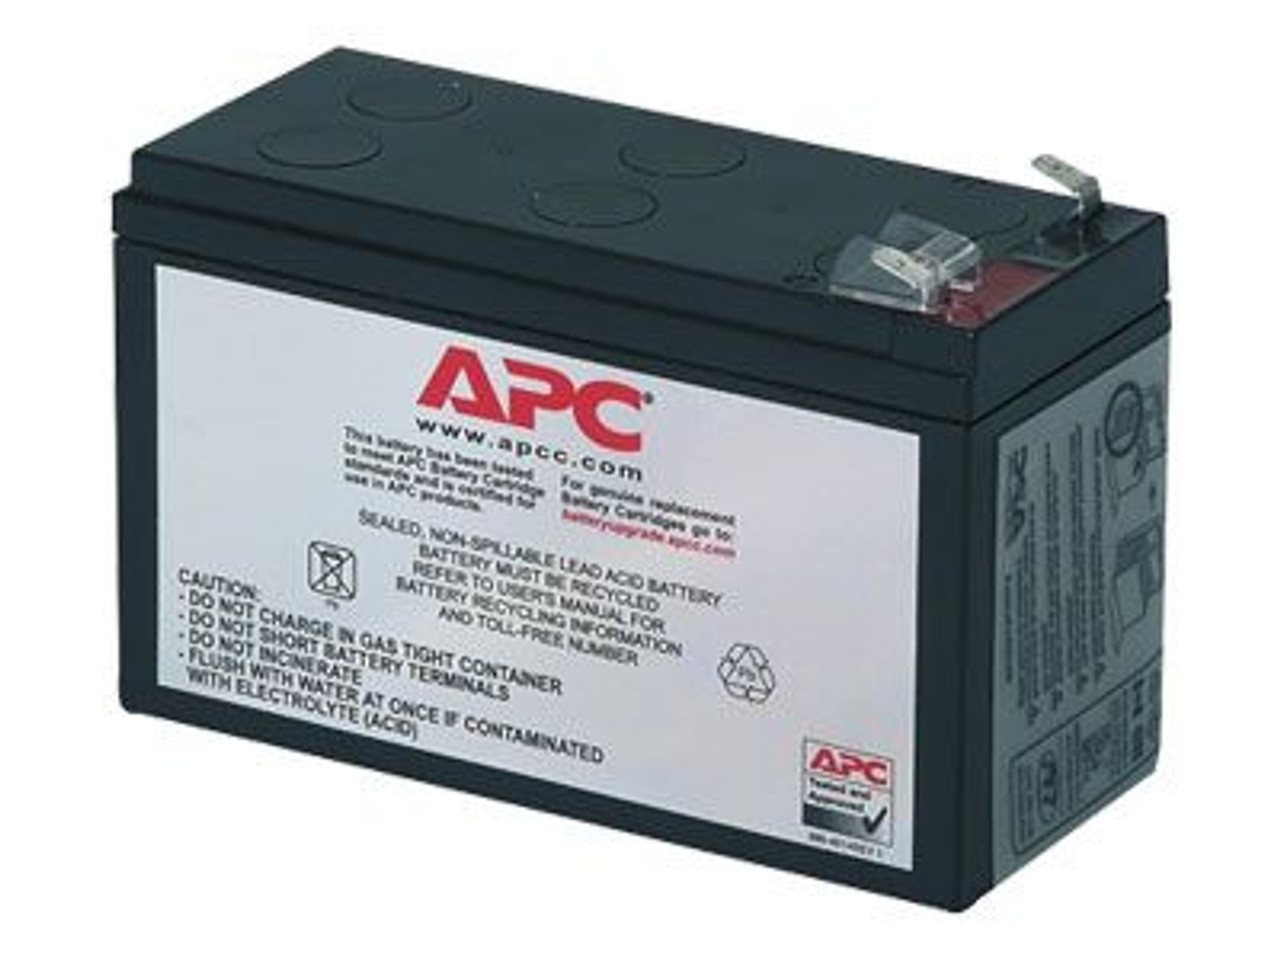 Image for APC Premium Replacement Battery Cartridge #2 UPS Battery CX Computer Superstore